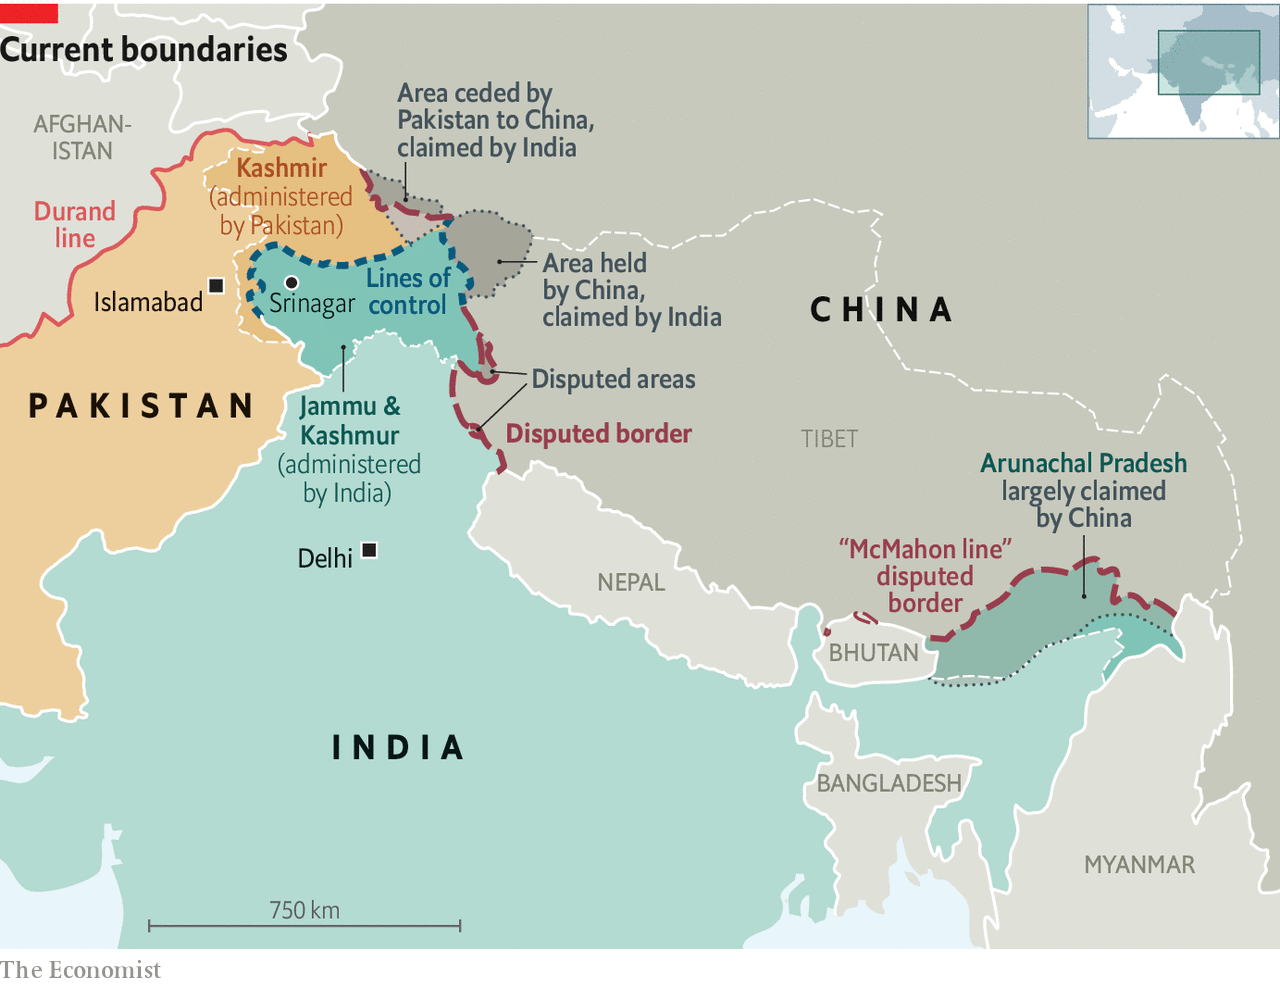 CHINA'S ATROCIOUS CLAIM ON INDIA'S ARUNACHAL PRADESH, AFTER ... on australia border map, russia border map, india border changes, spain border map, france border map, pakistan border map, western chinese border map, india china boundary map,